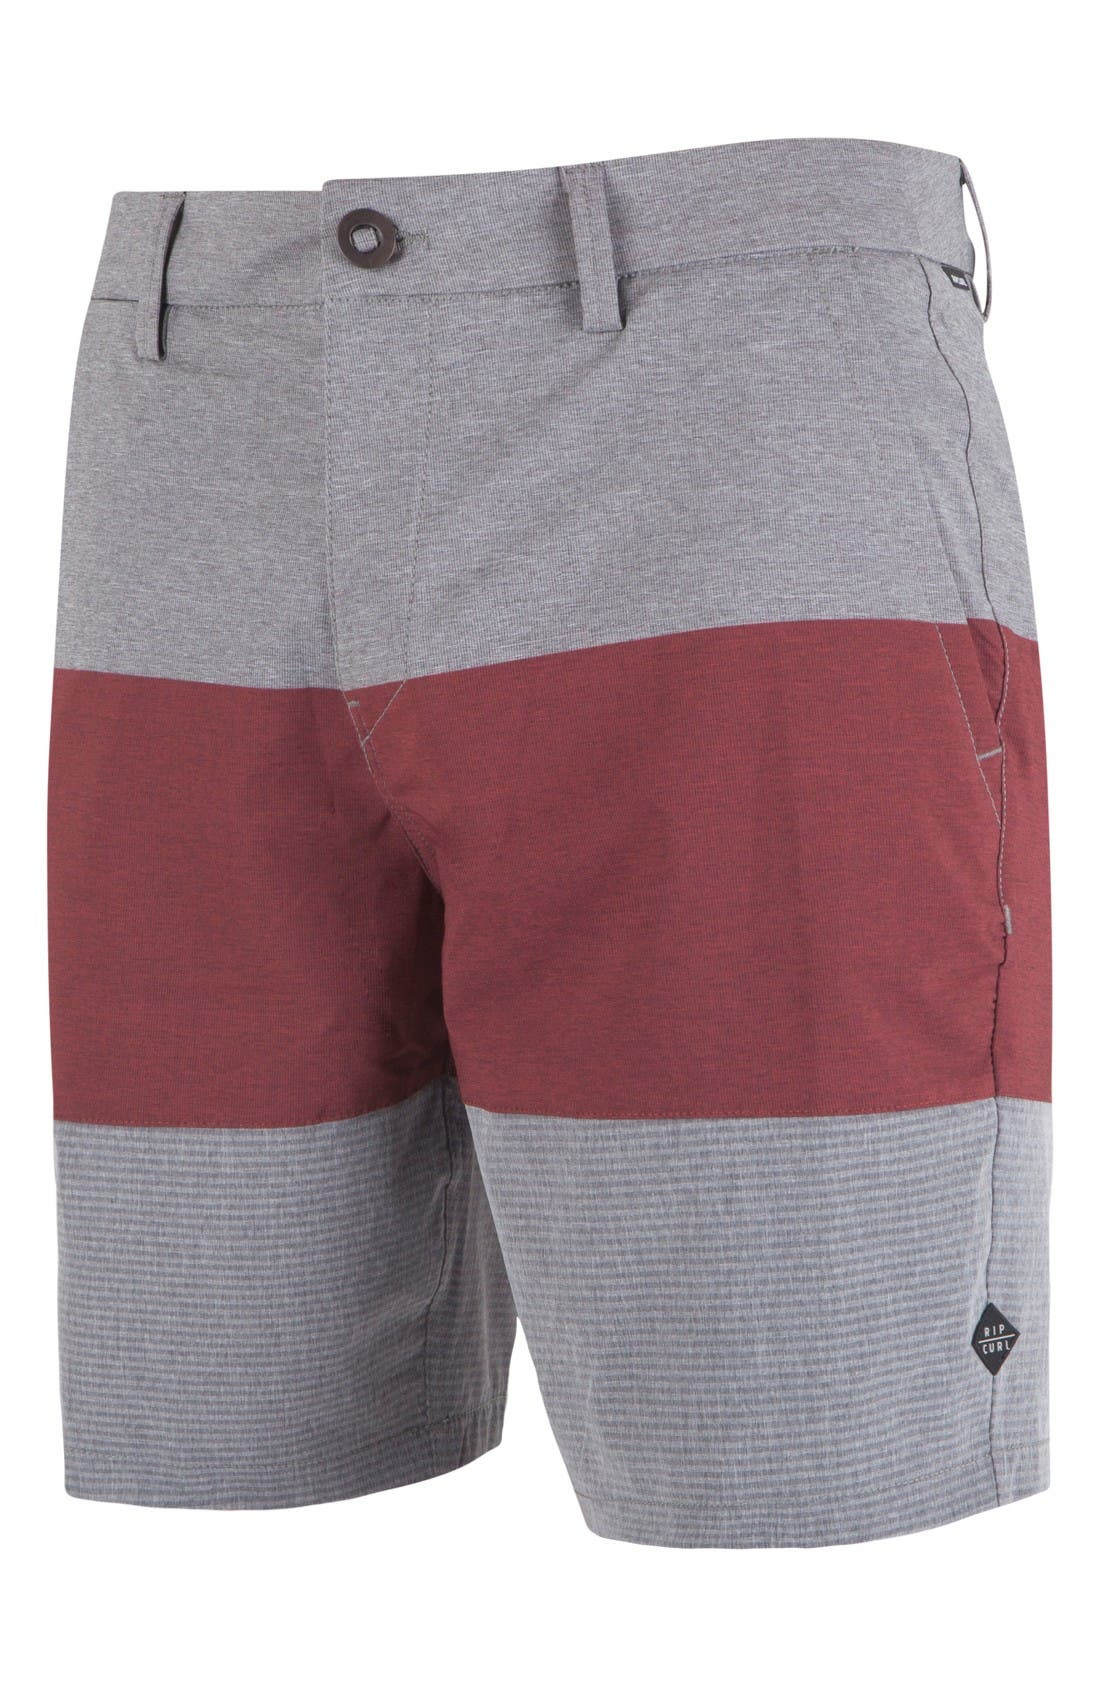 Rip Curl Mirage Chambers Boardwalk Hybrid Shorts (Big Boys)